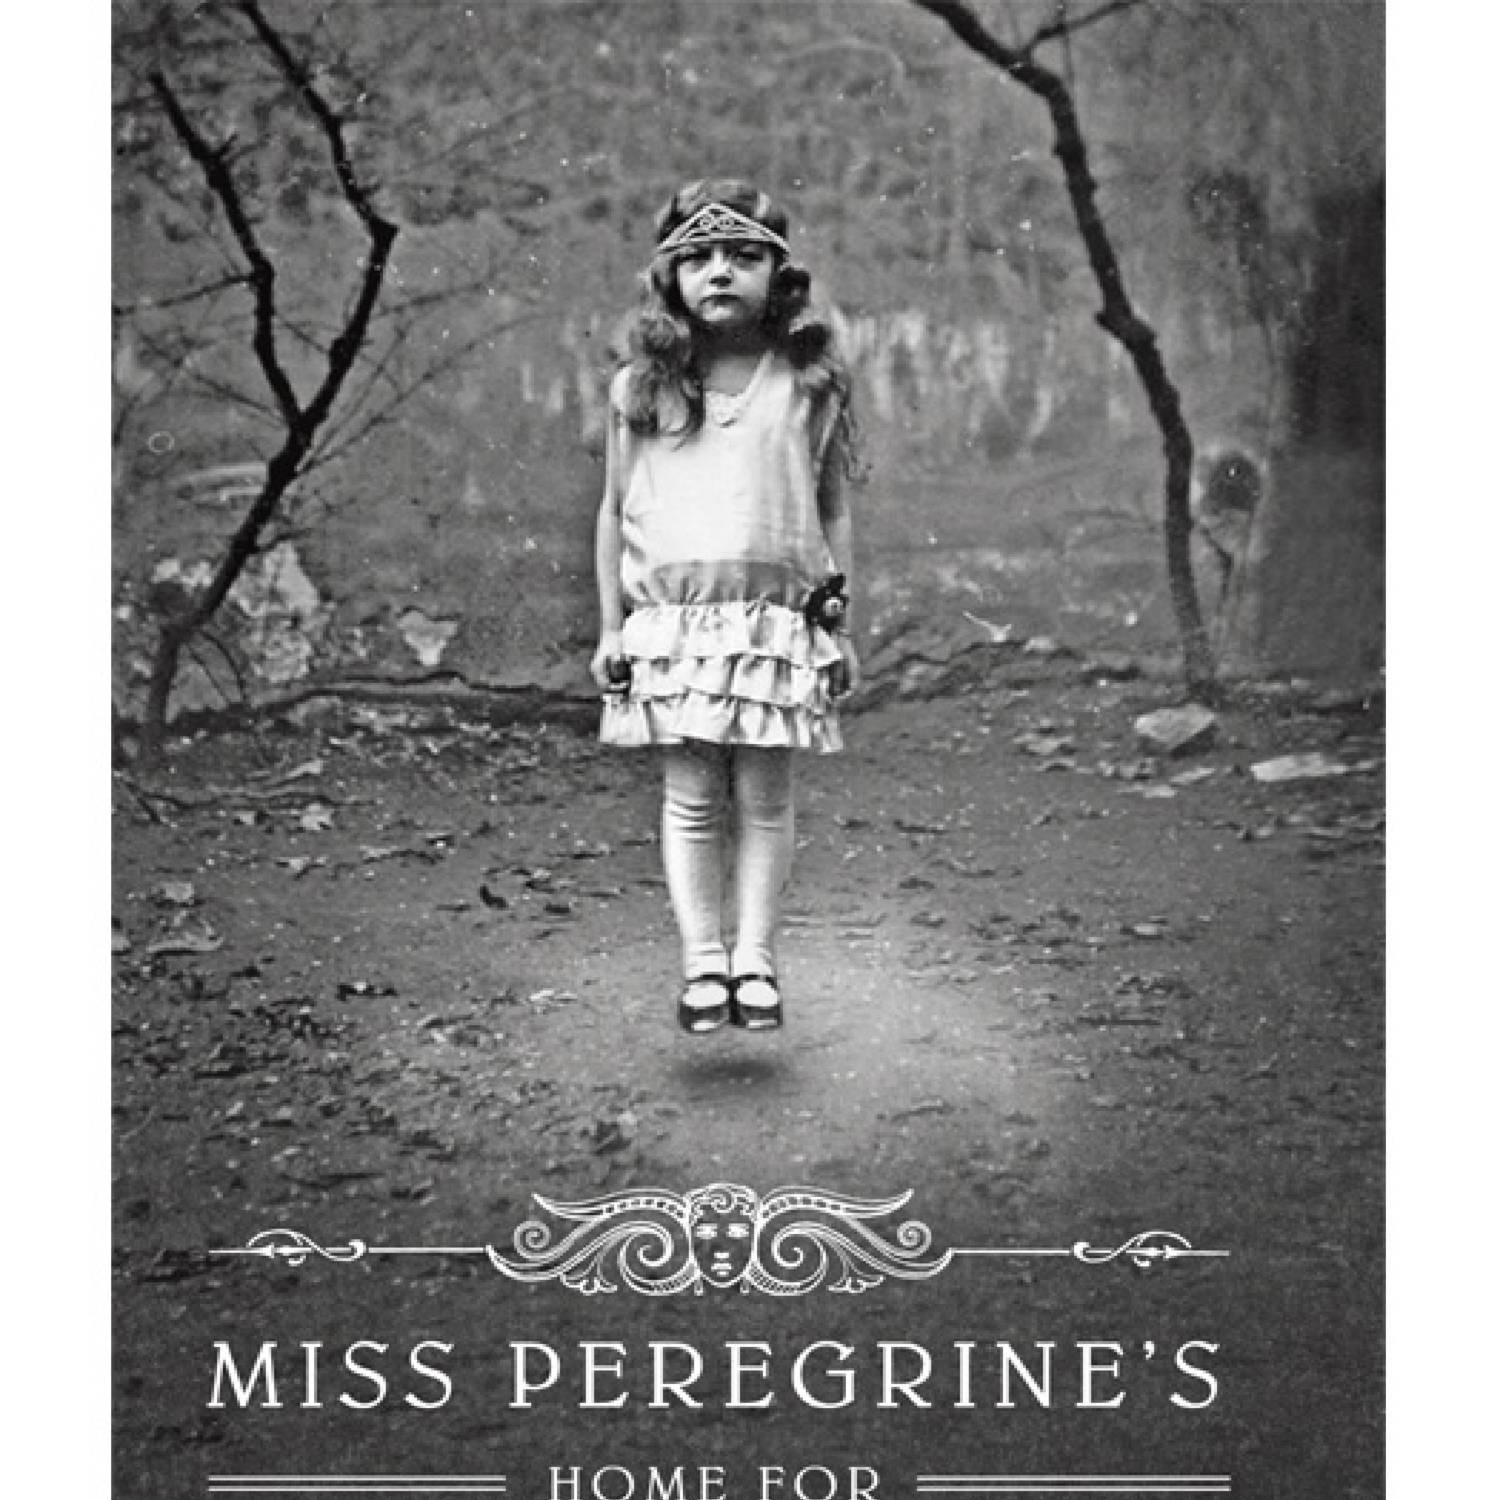 Download for peculiar miss epub peregrines home